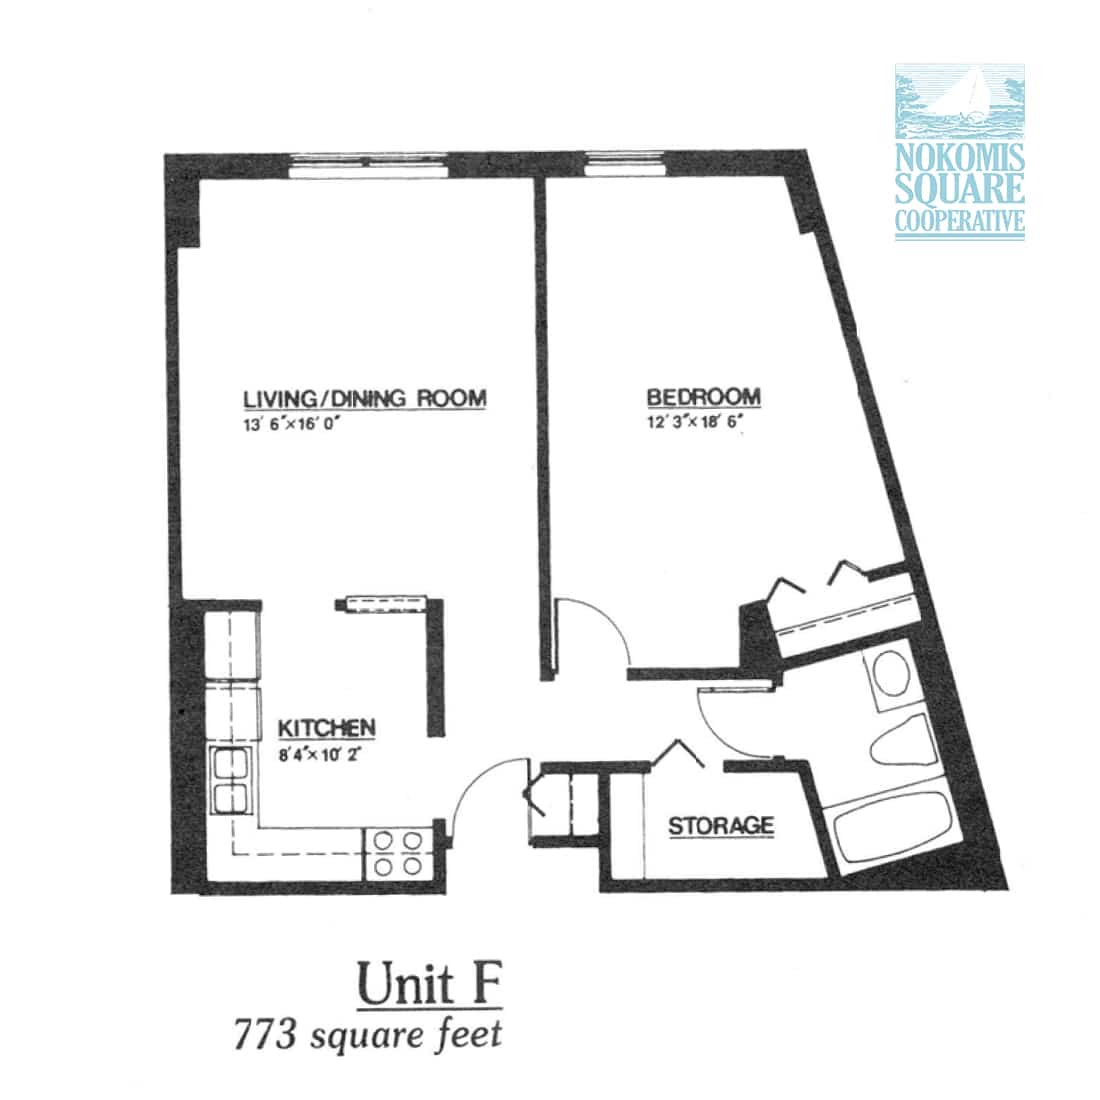 1 br Floorplan Unit F - Nokomis Square Senior Cooperative